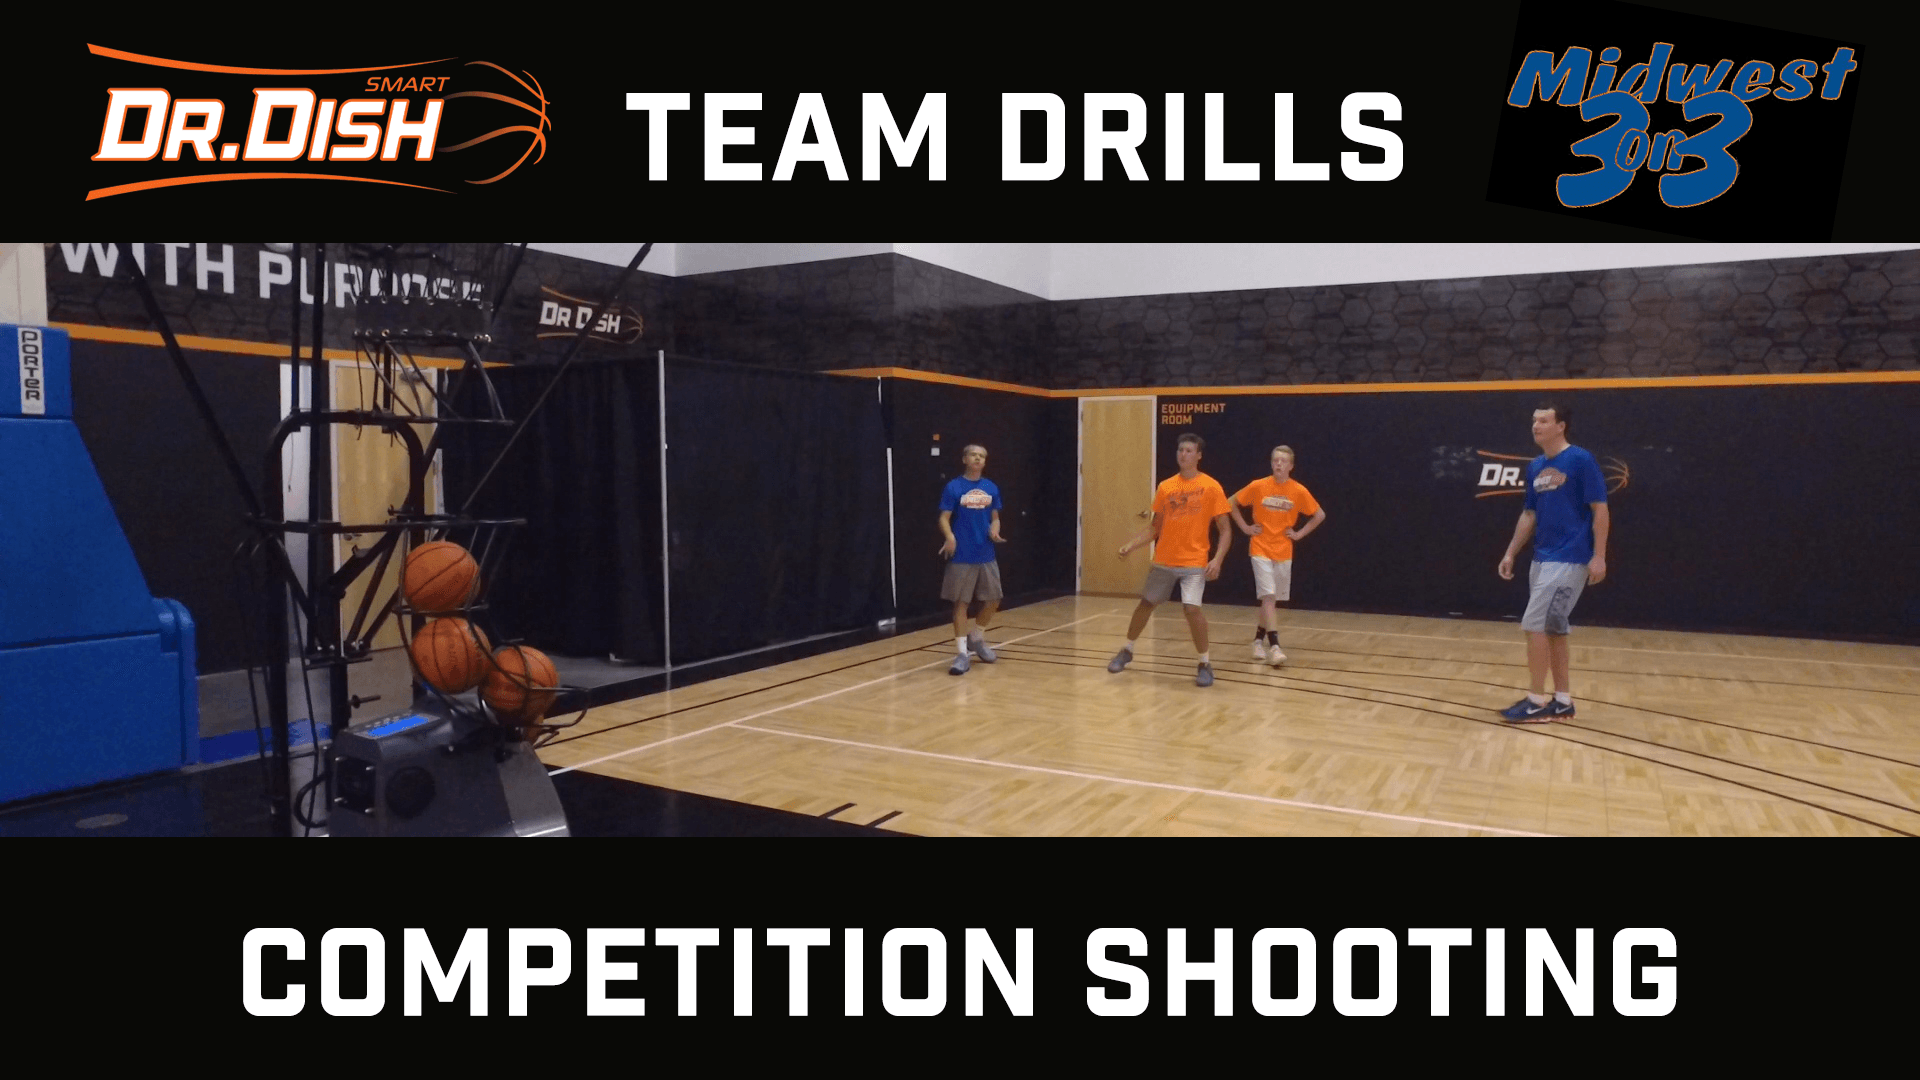 Basketball Shooting Drills: Competition Shooting With Midwest 3 on 3